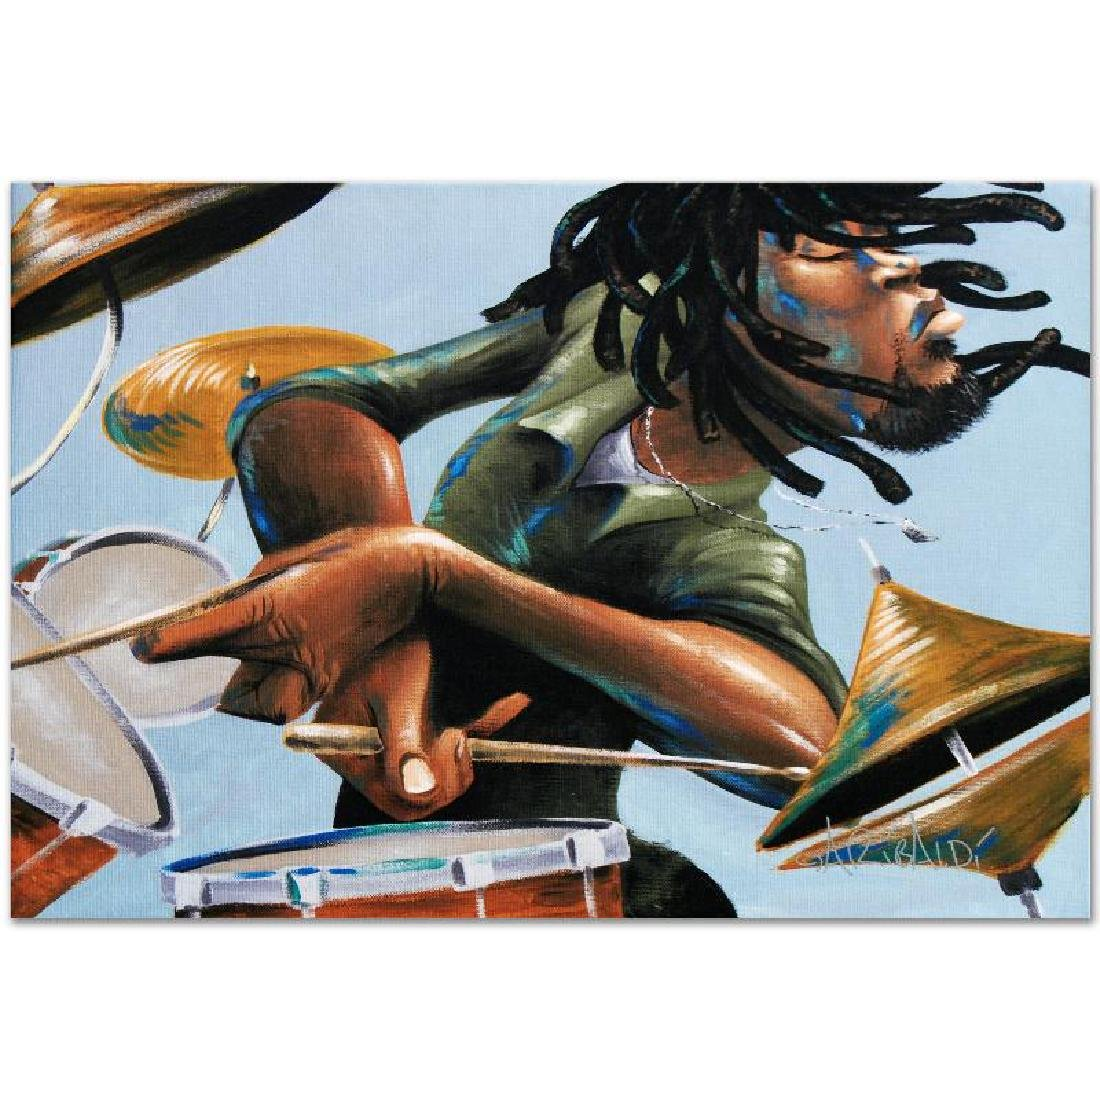 Dreads And Drums by Garibaldi, David - 3